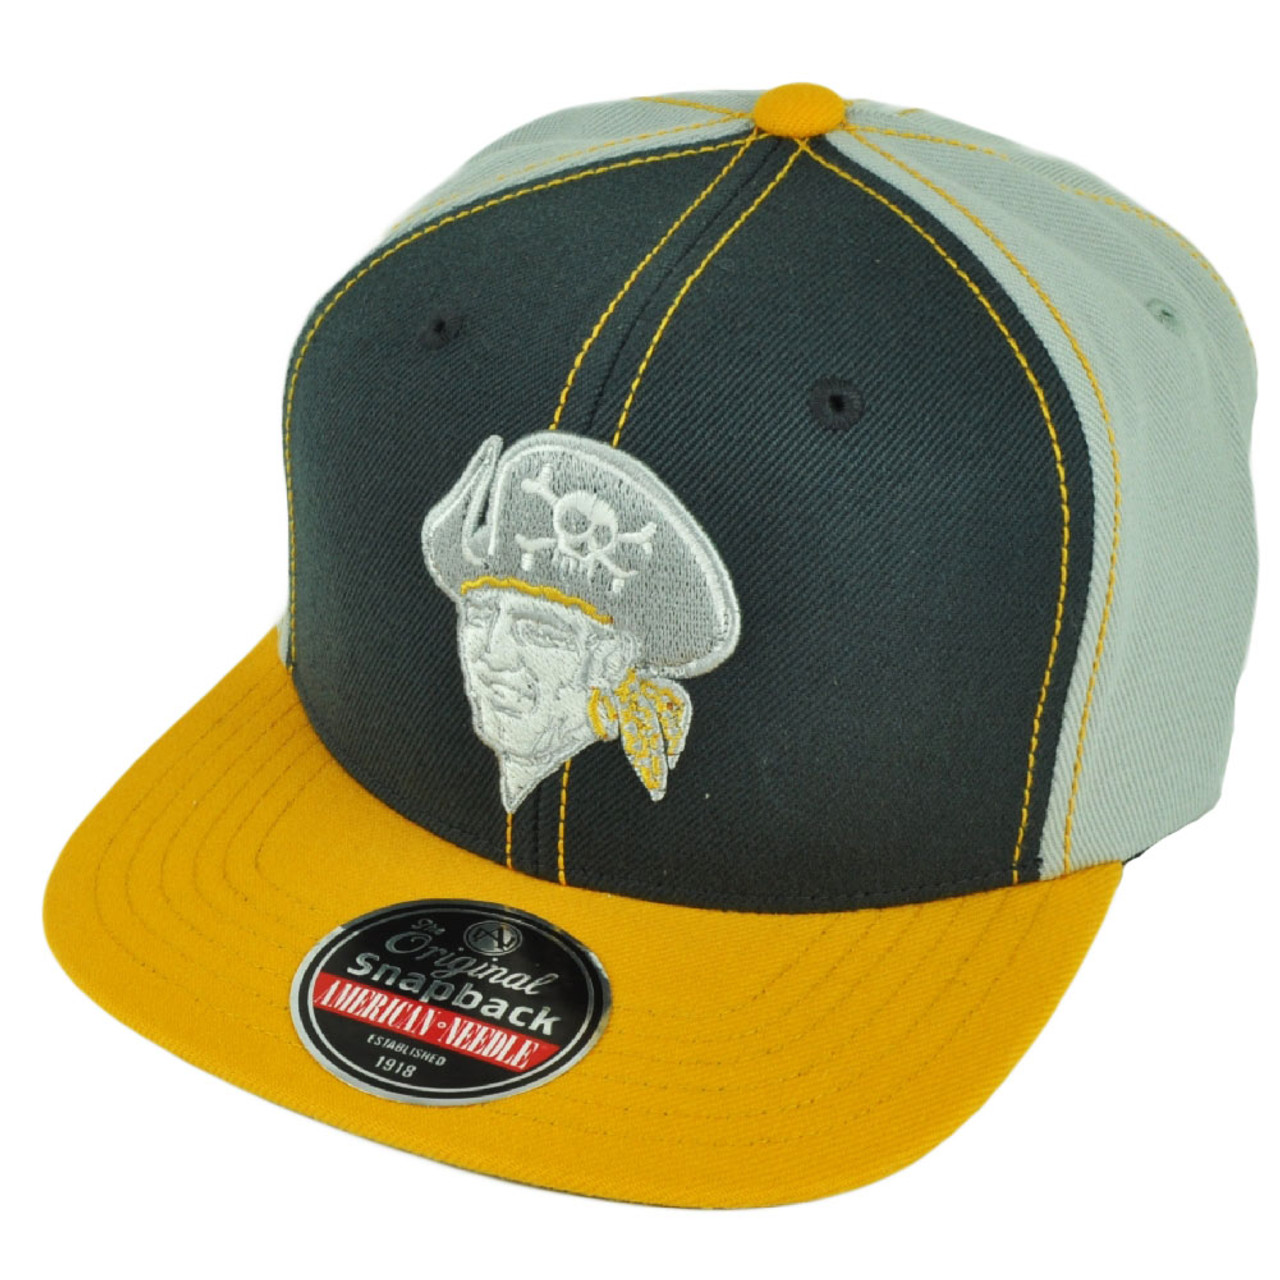 new product 1051e fa11a MLB American Needle Pittsburgh Pirates Snapback Grey Yellow Flat Bill Hat  Cap - Cap Store Online.com